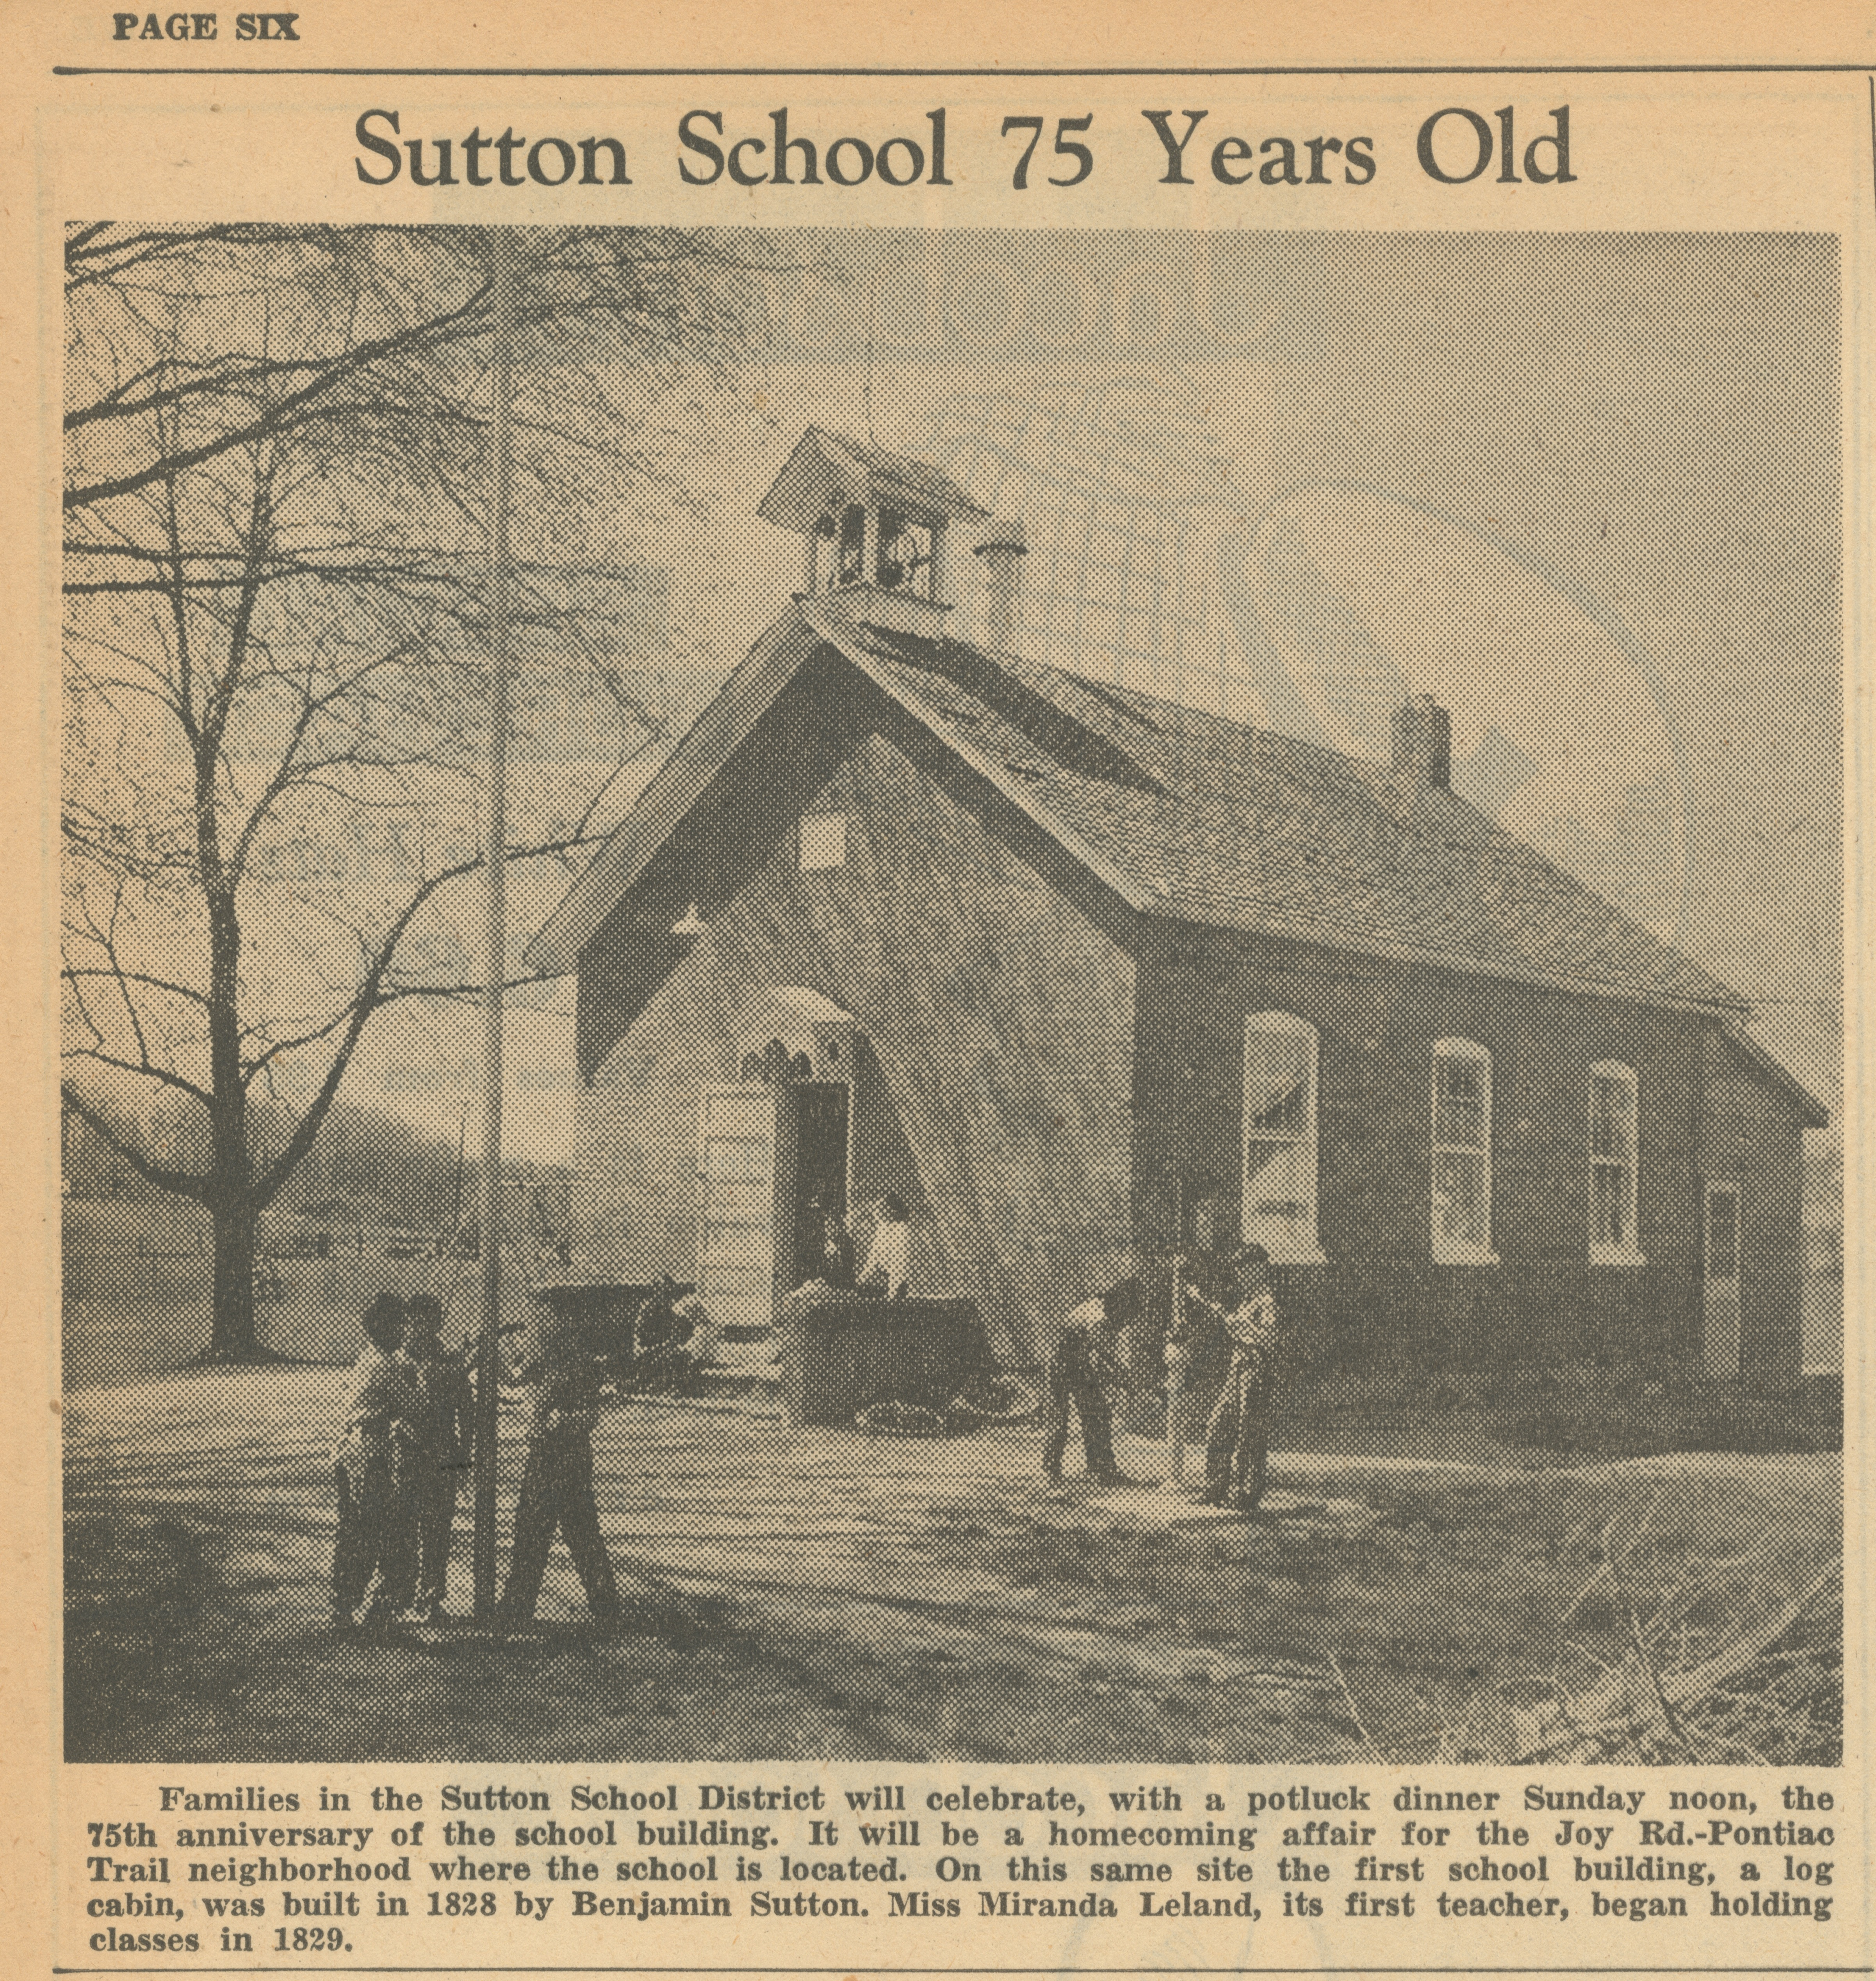 Sutton School 75 Years Old image